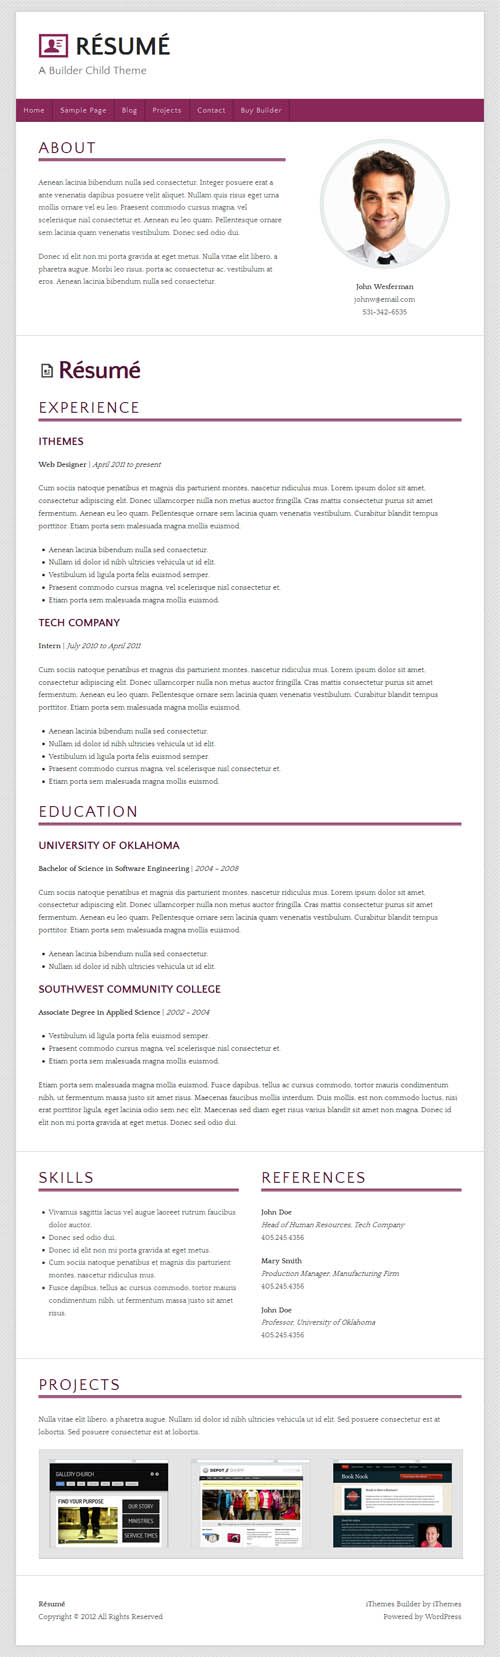 Résumé WordPress Theme